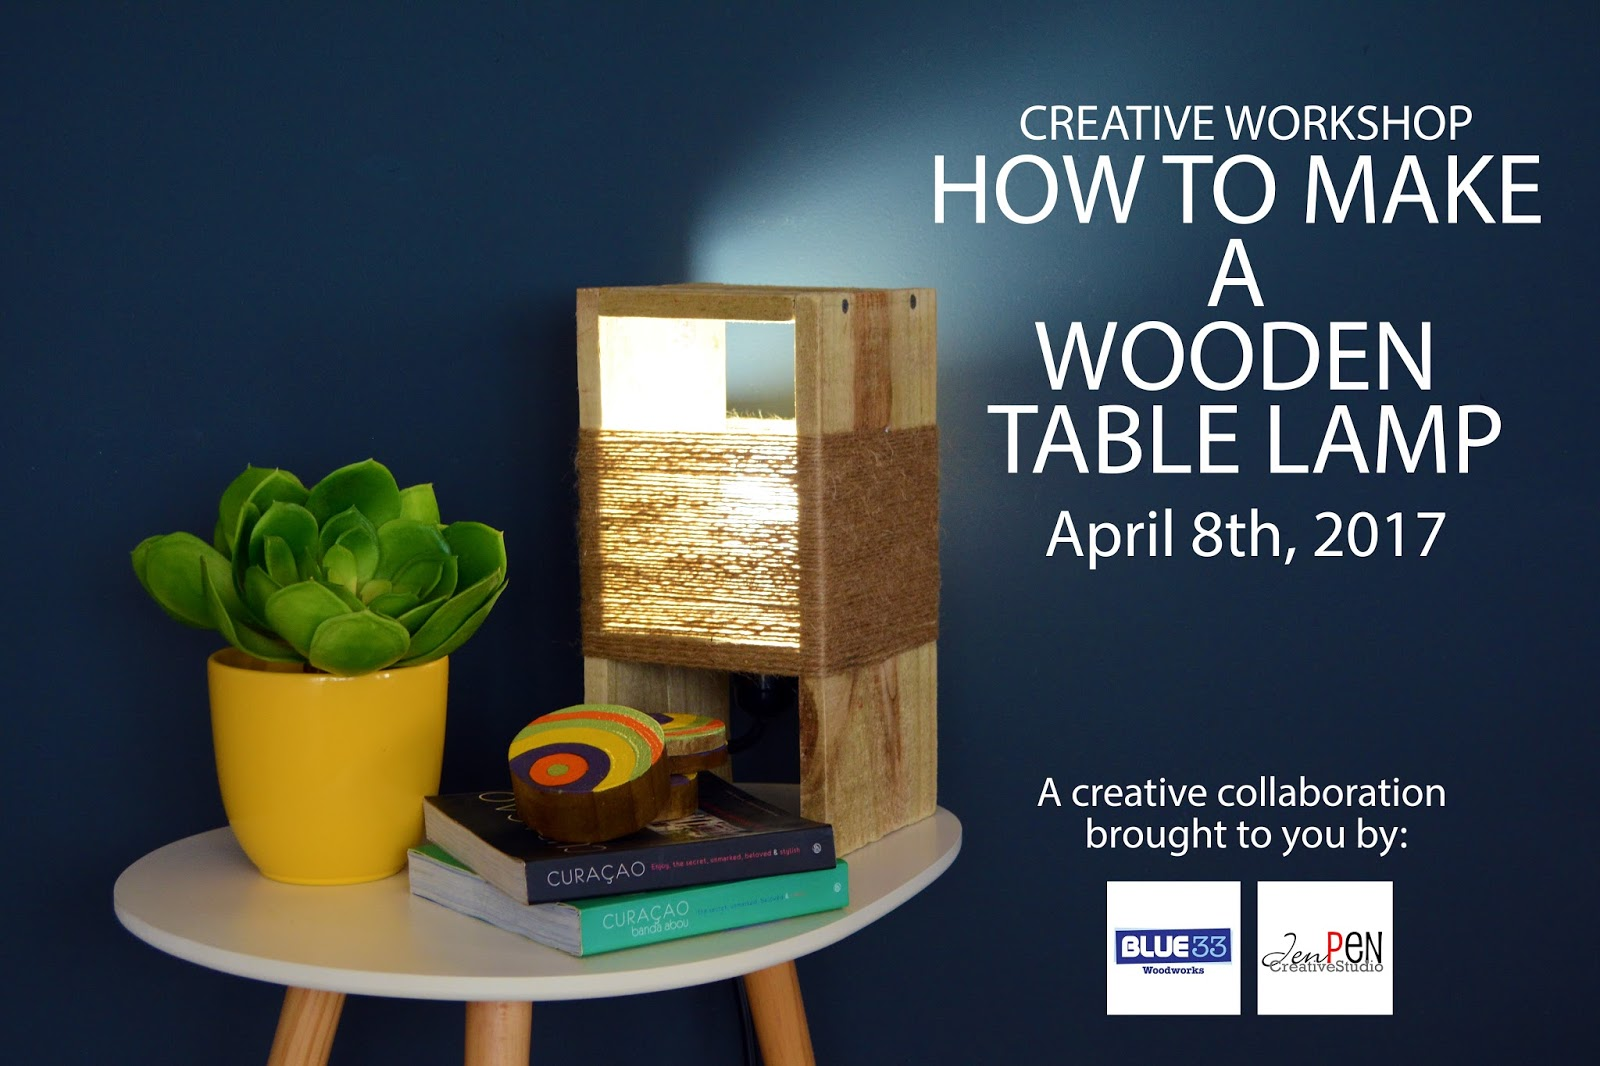 ... Is Going To Be Held On Saturday, April 8th. The Total Cost Of The  Workshop Would Be Nafl. 75, . This Will Include All The Materials To Make  The Lamp And ...